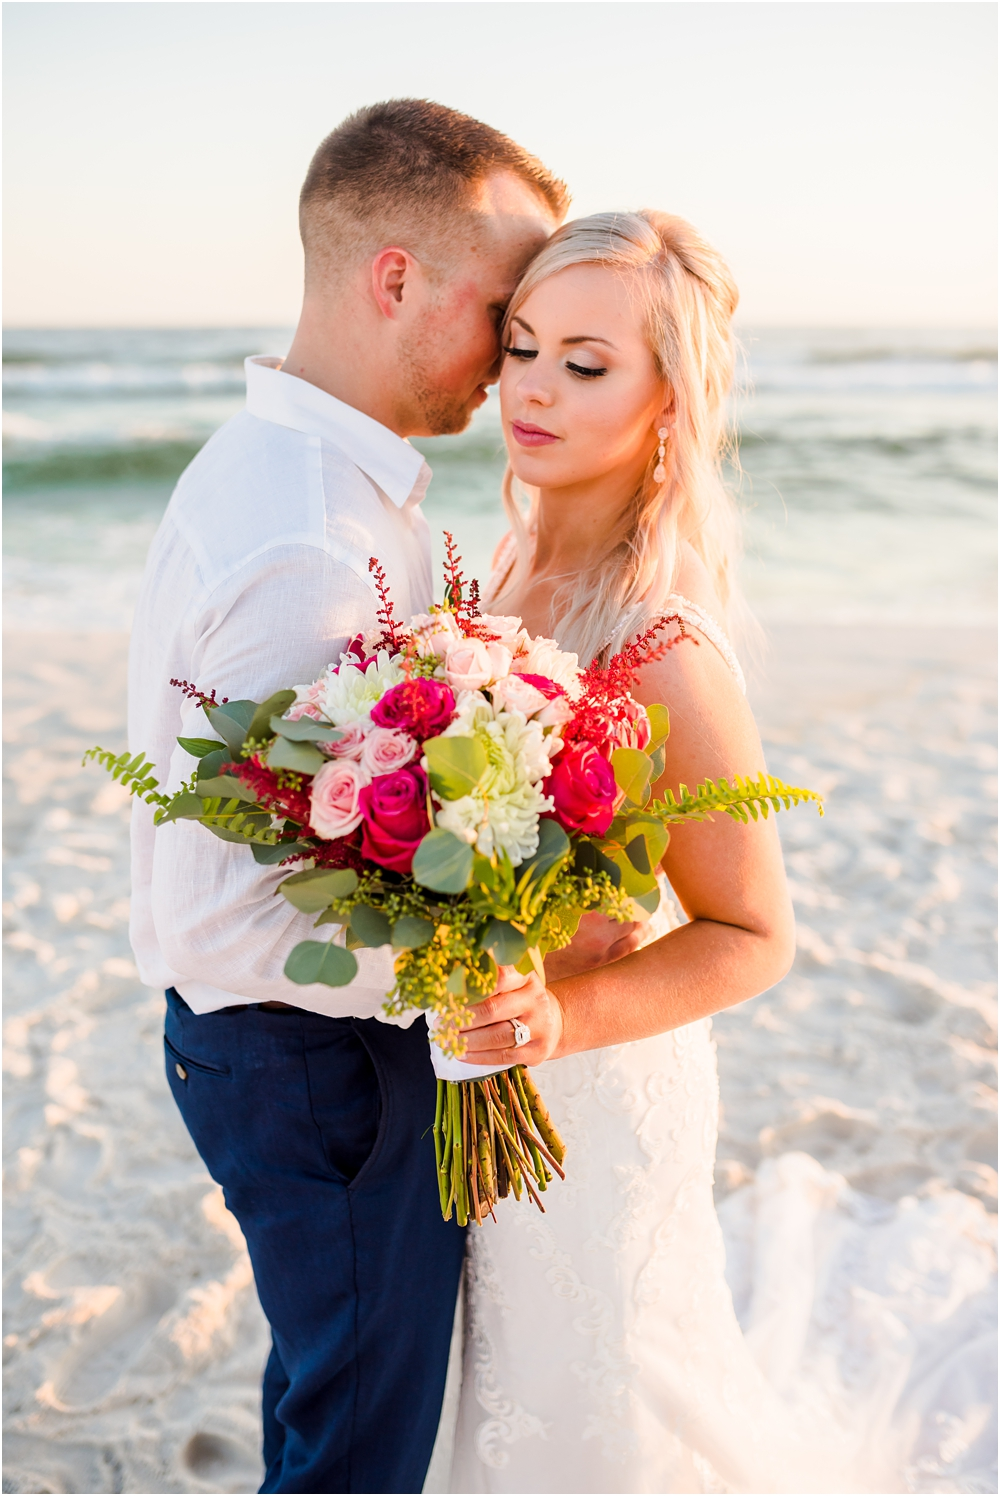 mcglothlin-wedding-kiersten-stevenson-photography-30a-panama-city-beach-dothan-tallahassee-(103-of-145).jpg